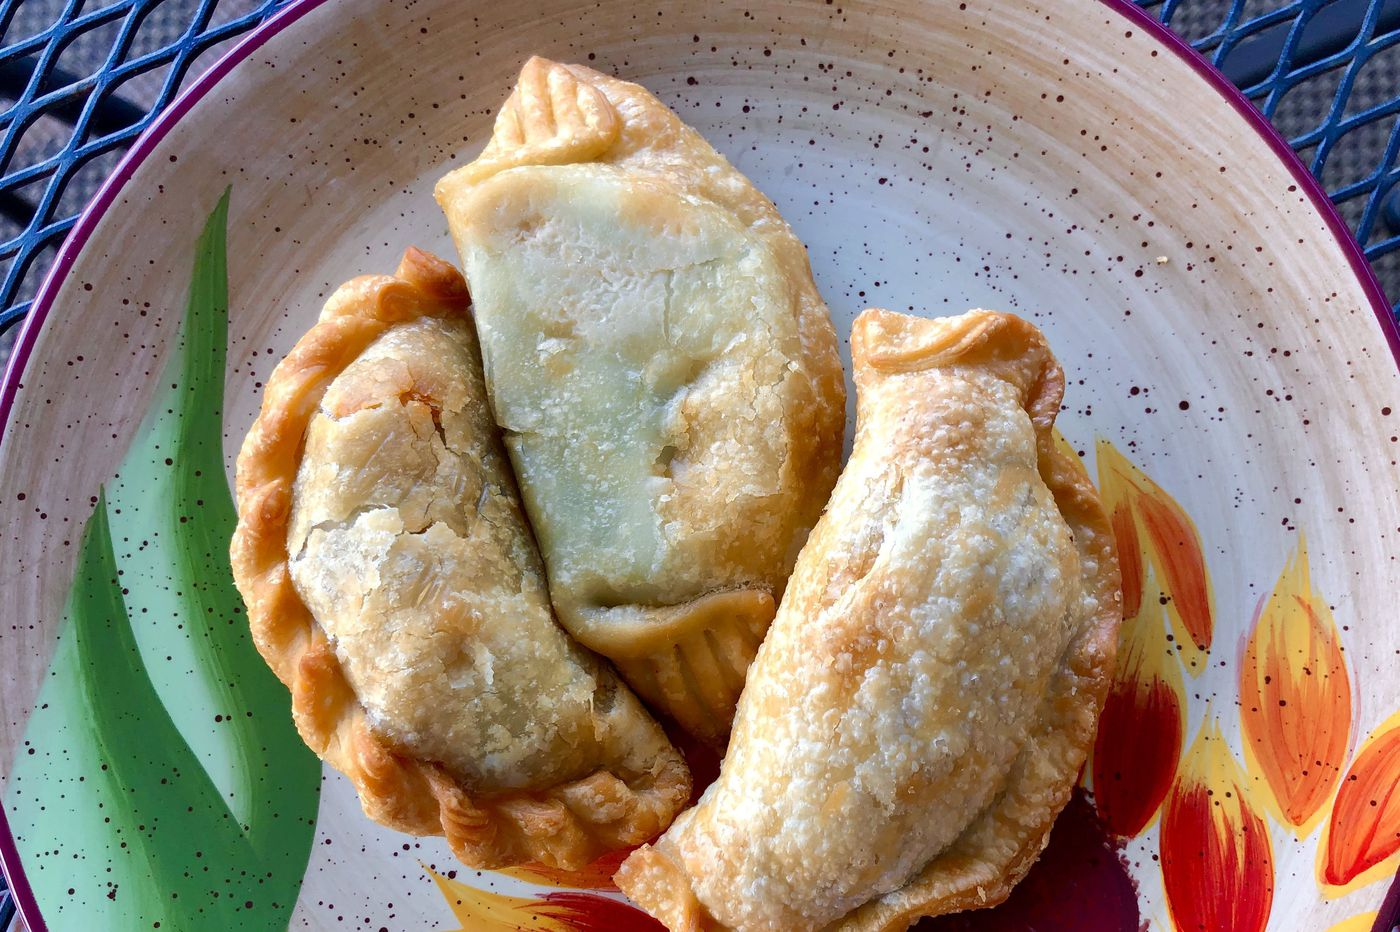 Red Store's empanadas are worth a trip to the Shore